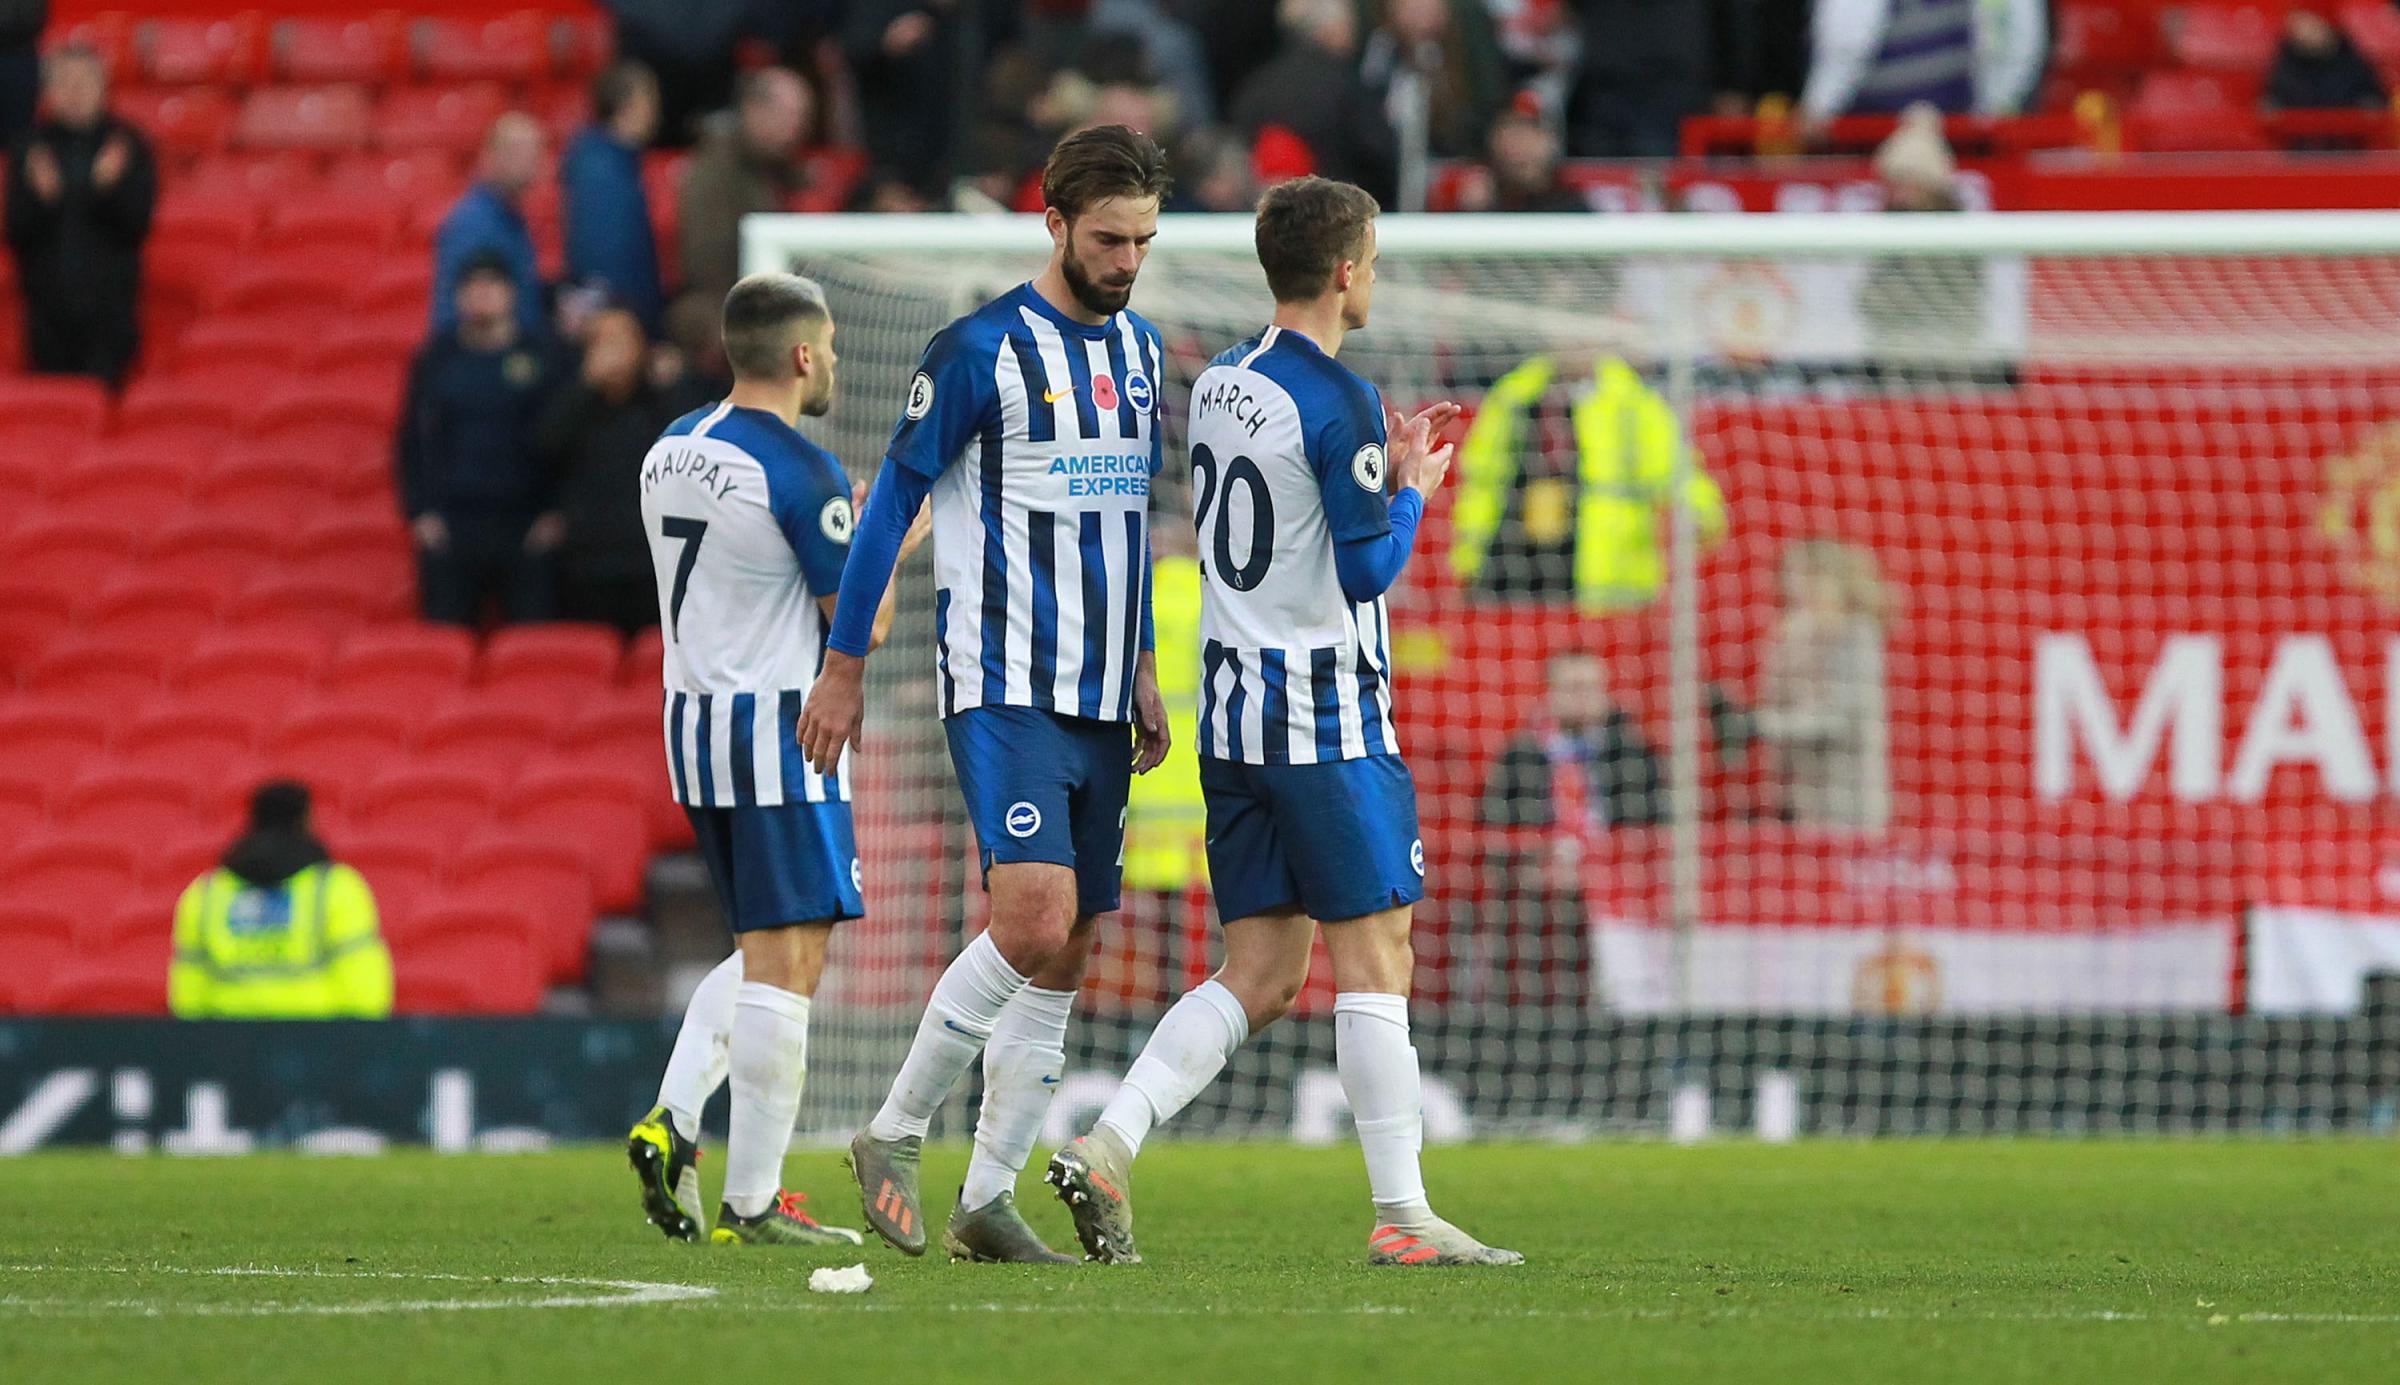 Relive the action as Albion are beaten by Manchester United